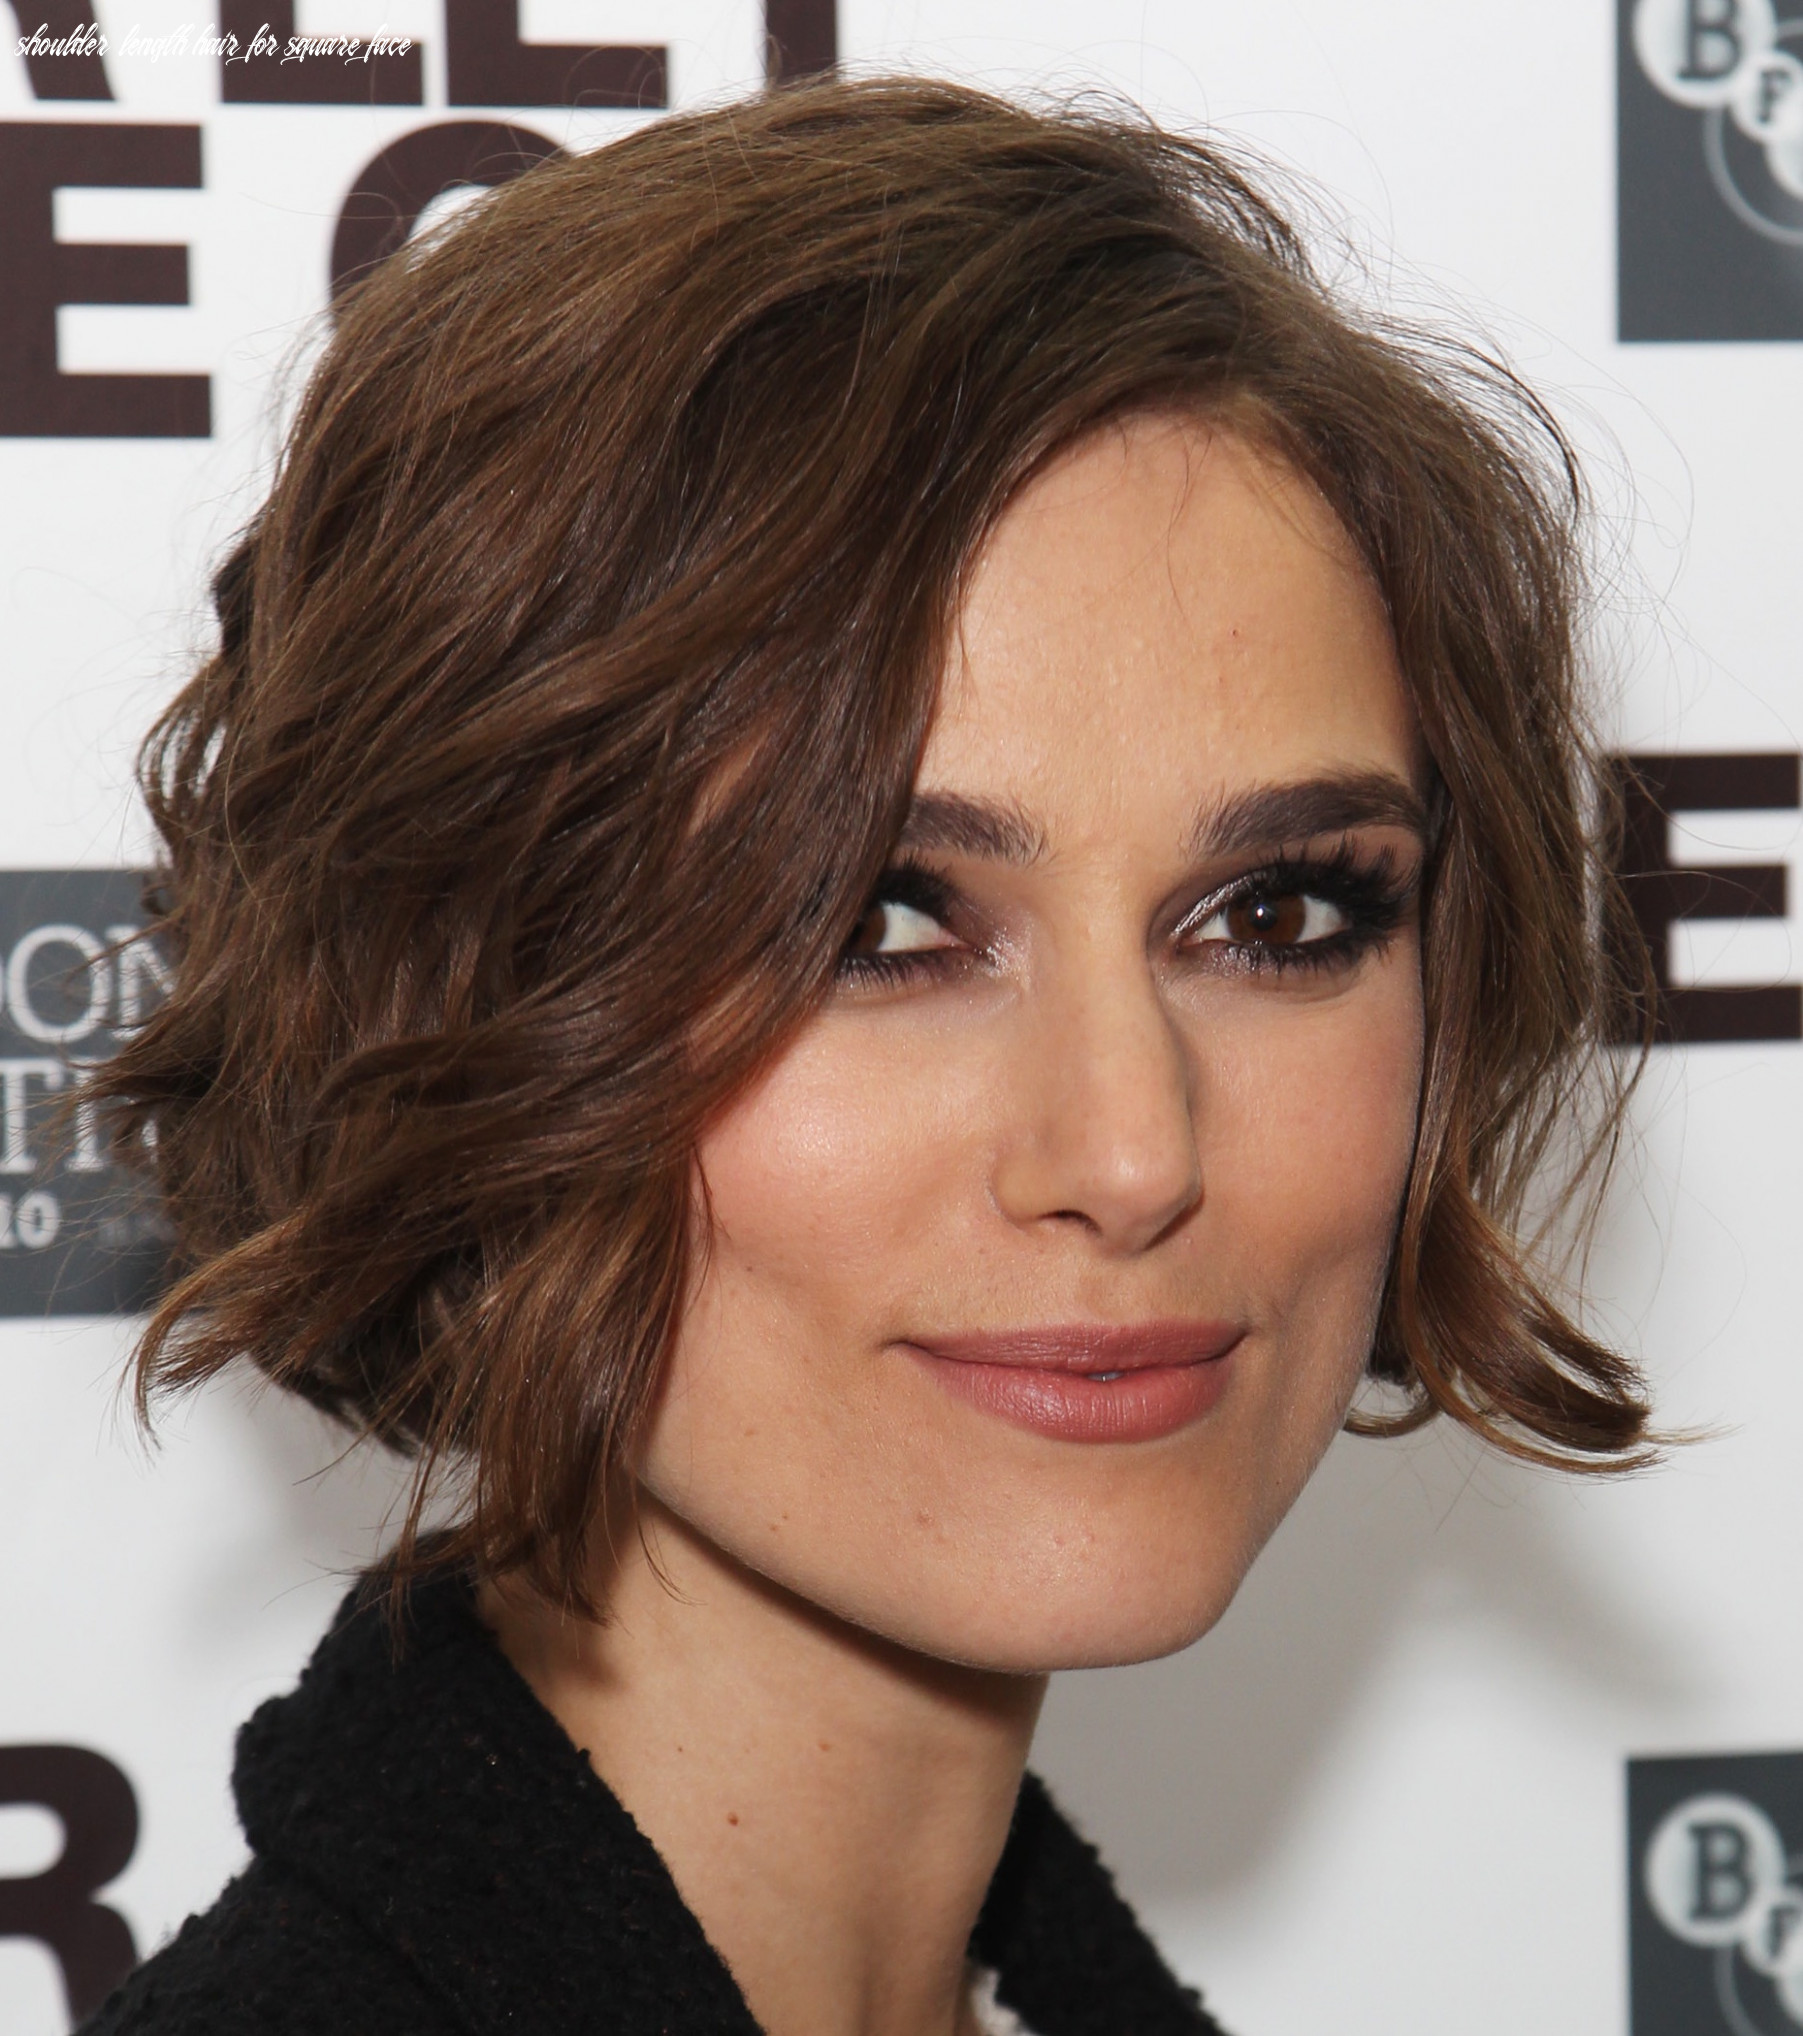 11 best hairstyles for square faces rounding the angles shoulder length hair for square face